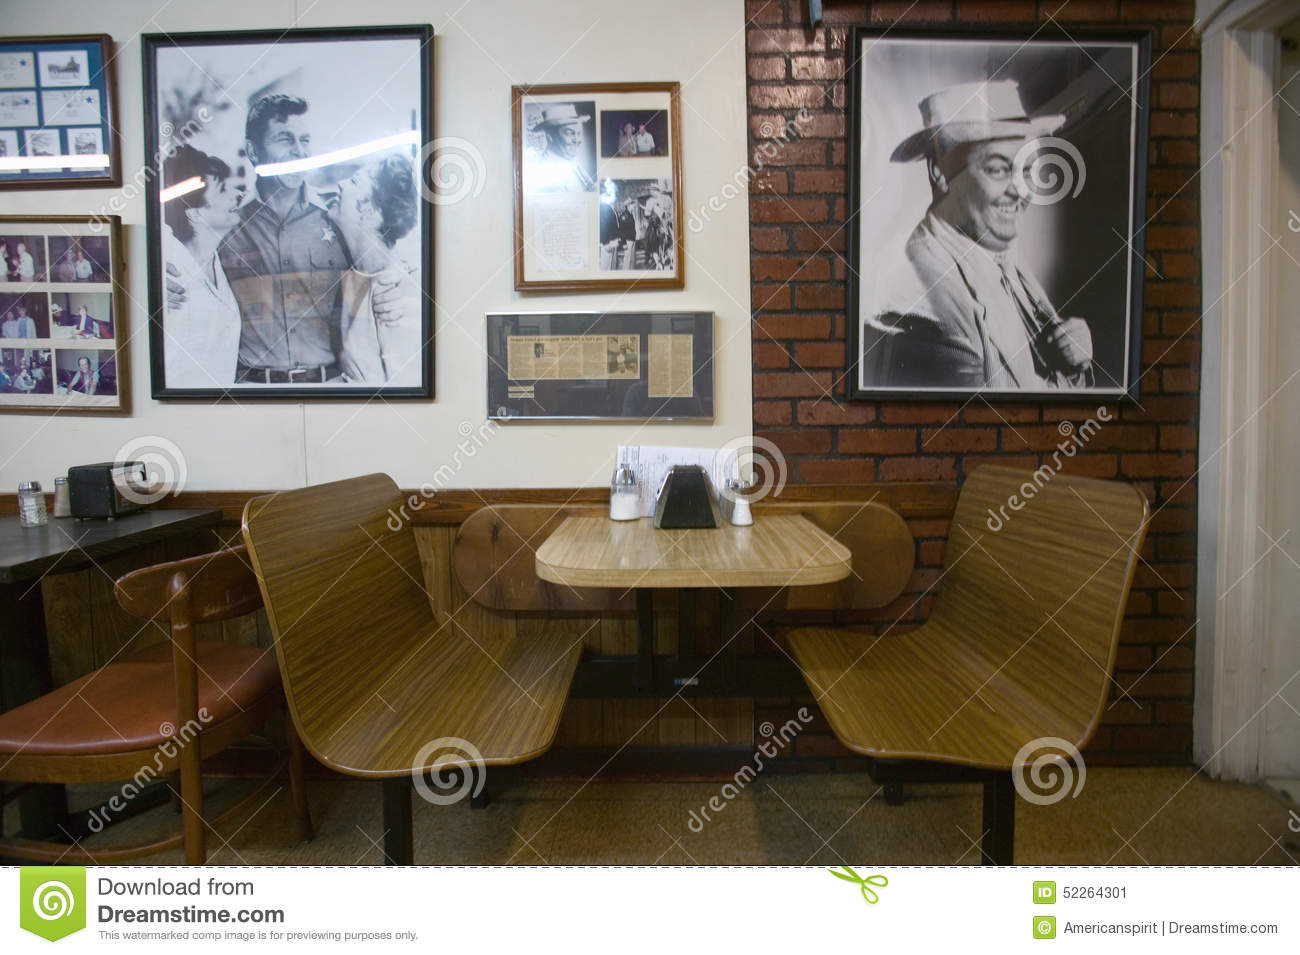 Interior of restaurant in Mount Airy, North Carolina, the town featured in �Mayberry RFD� and home of Andy Griffith